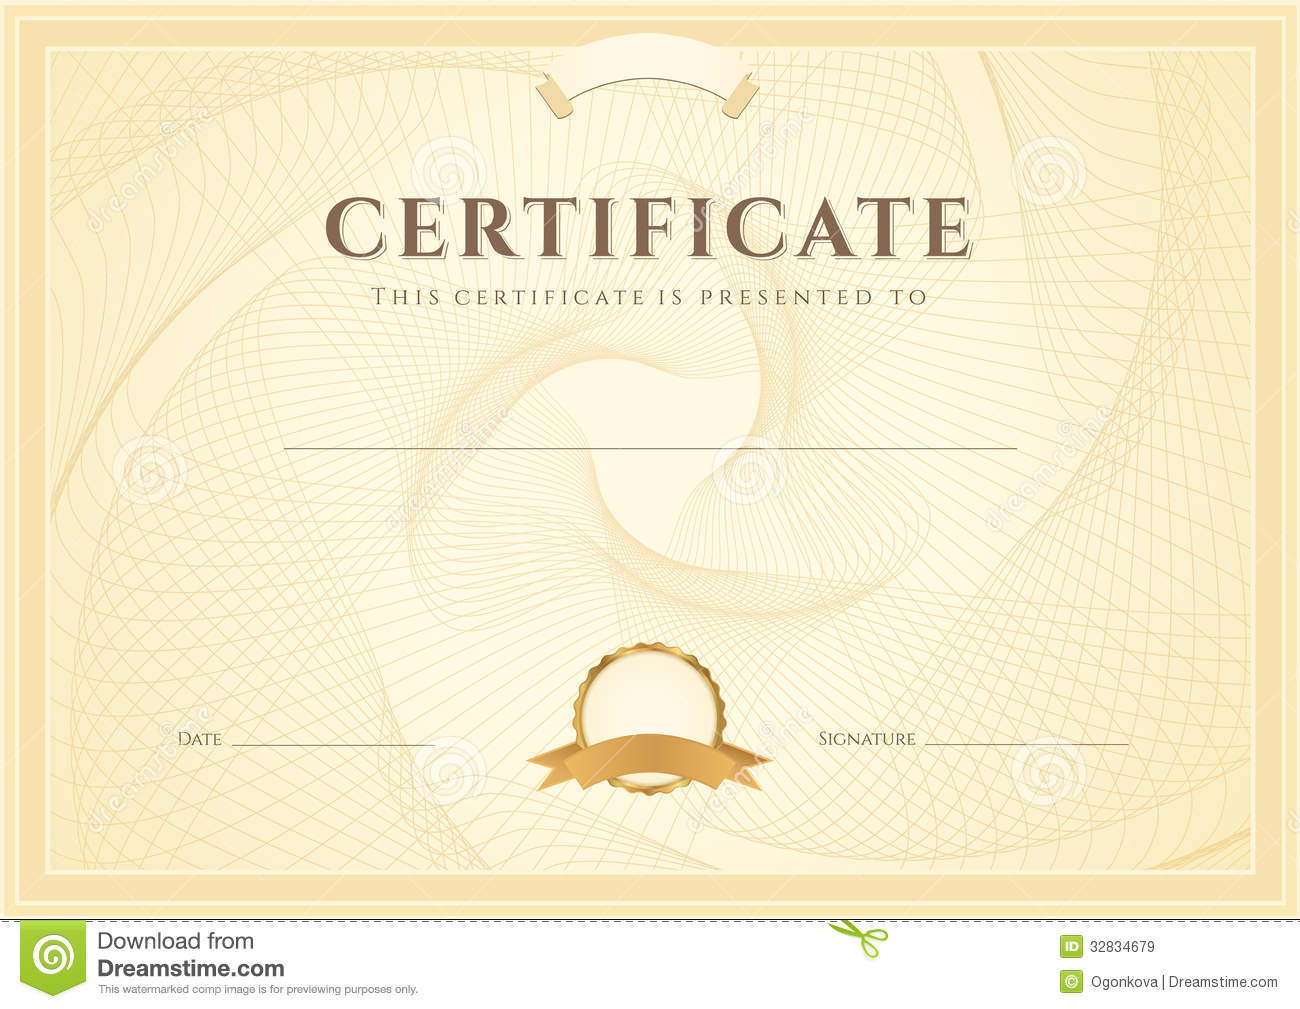 Certificate diploma background template stock vector certificate diploma background template yadclub